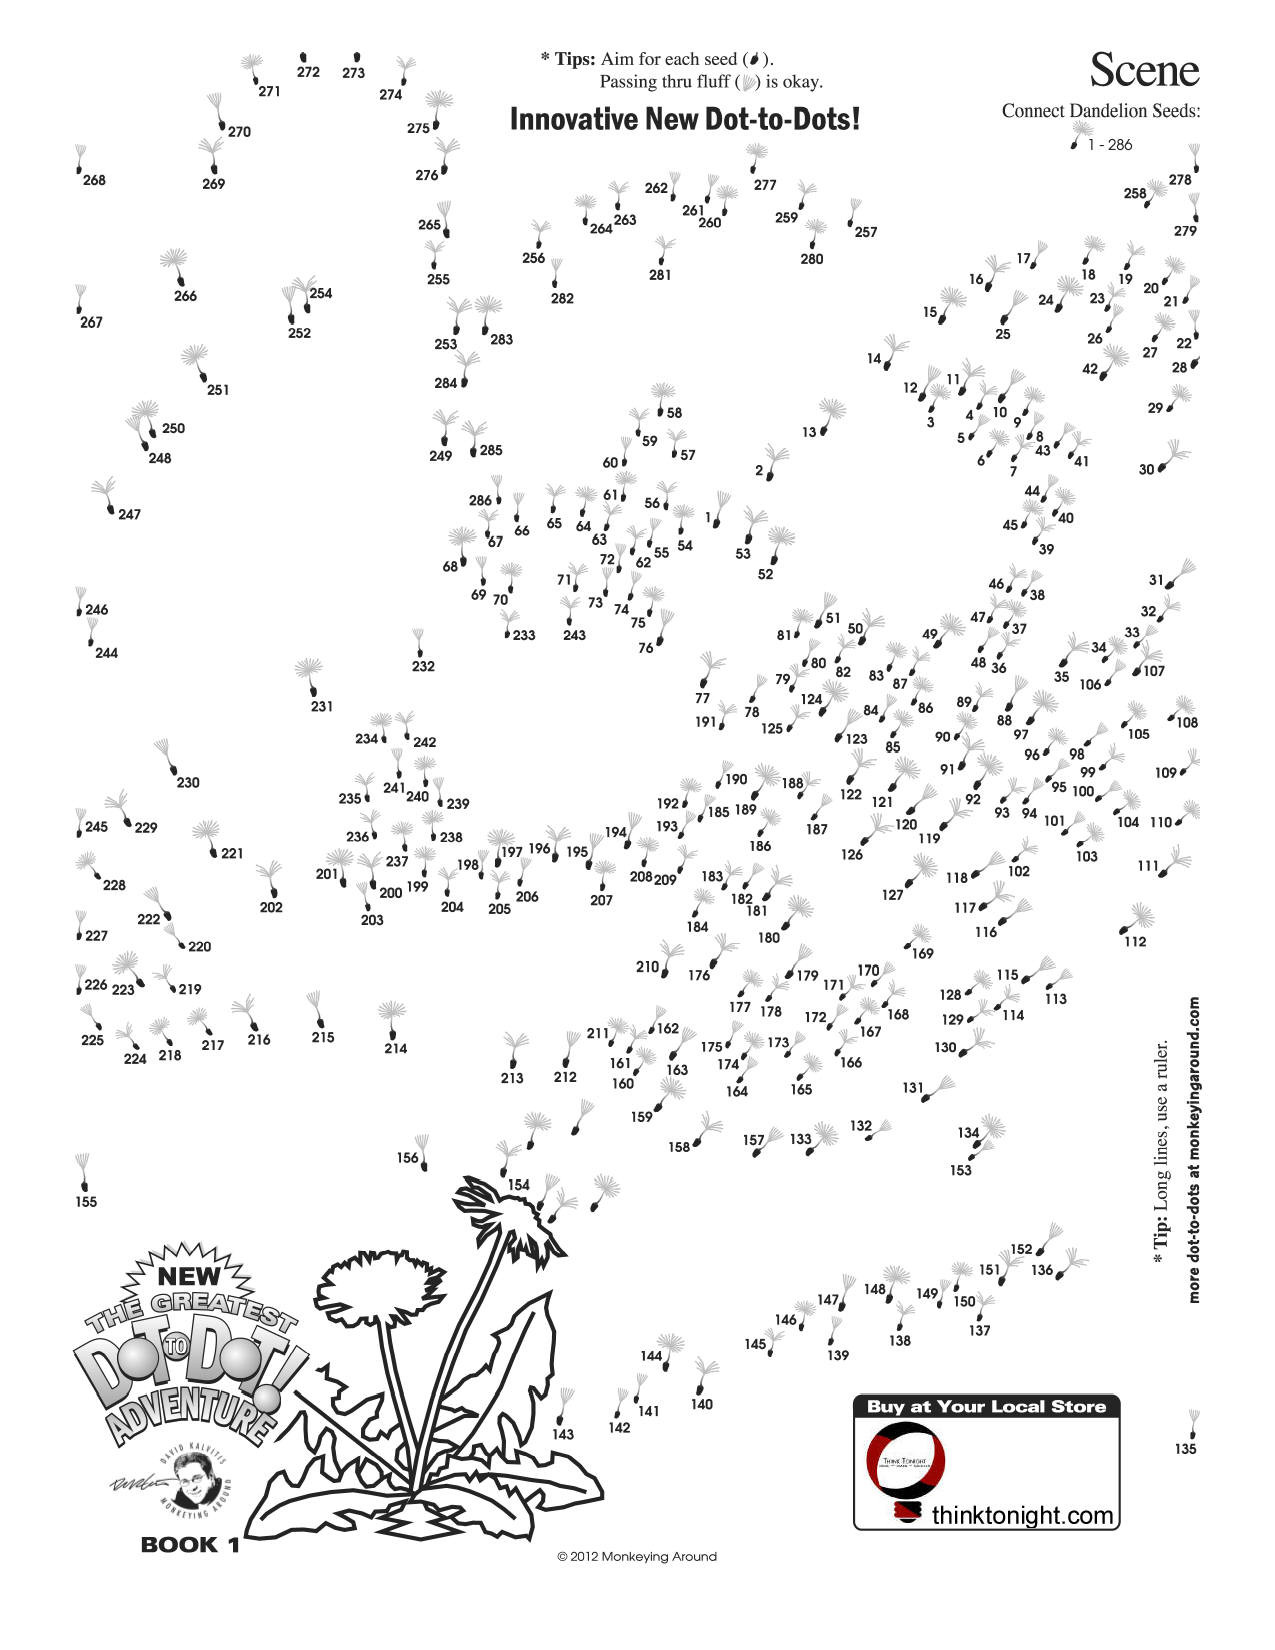 Printable Adult Connect the Dots Downloadable Dot to Dot Puzzles